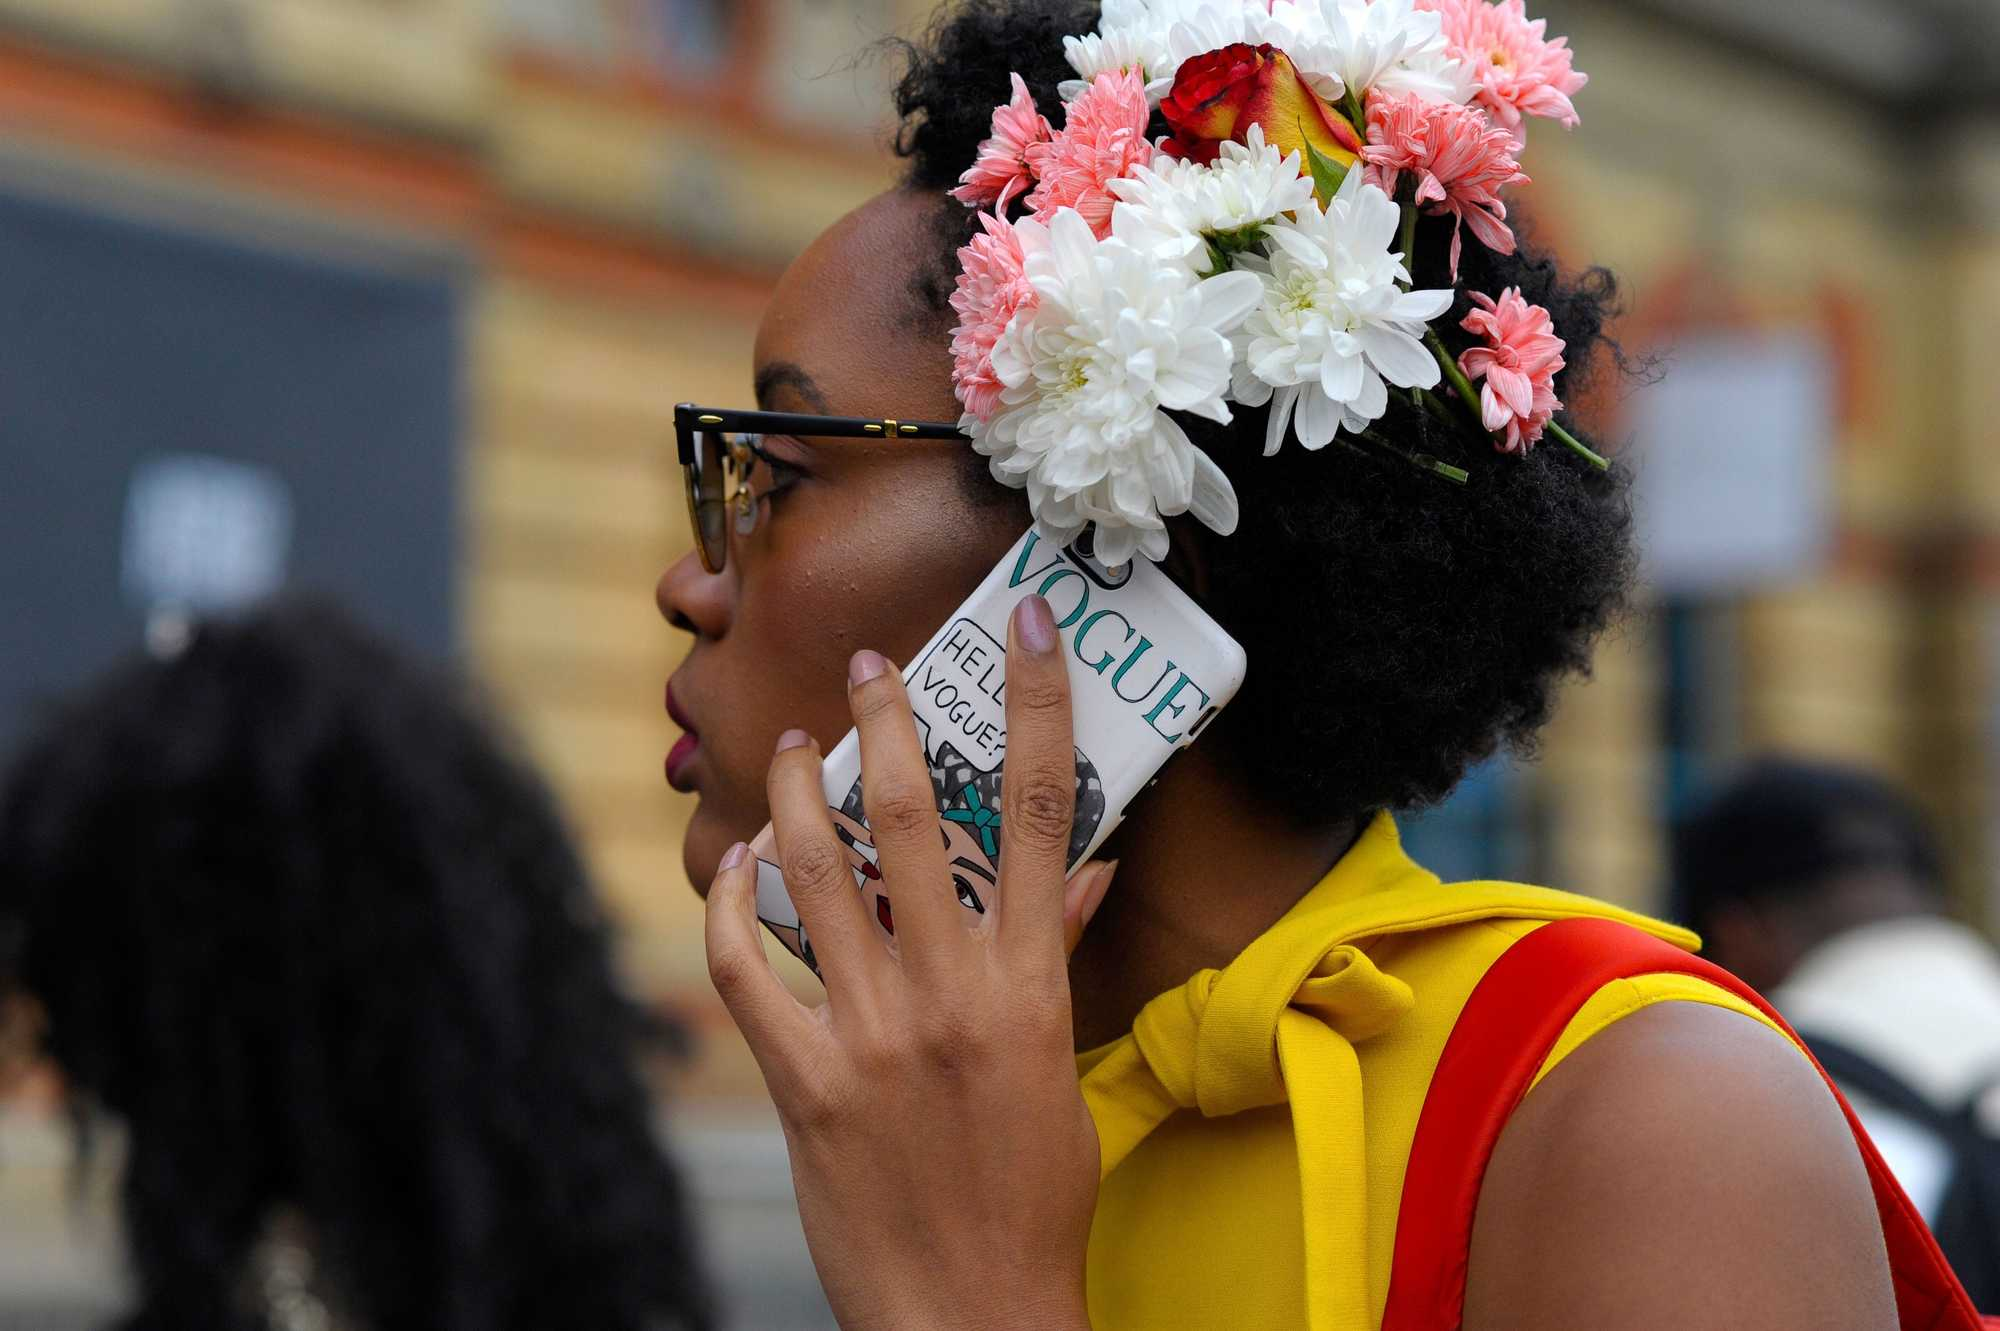 woman with afro hair with flowers for coachella